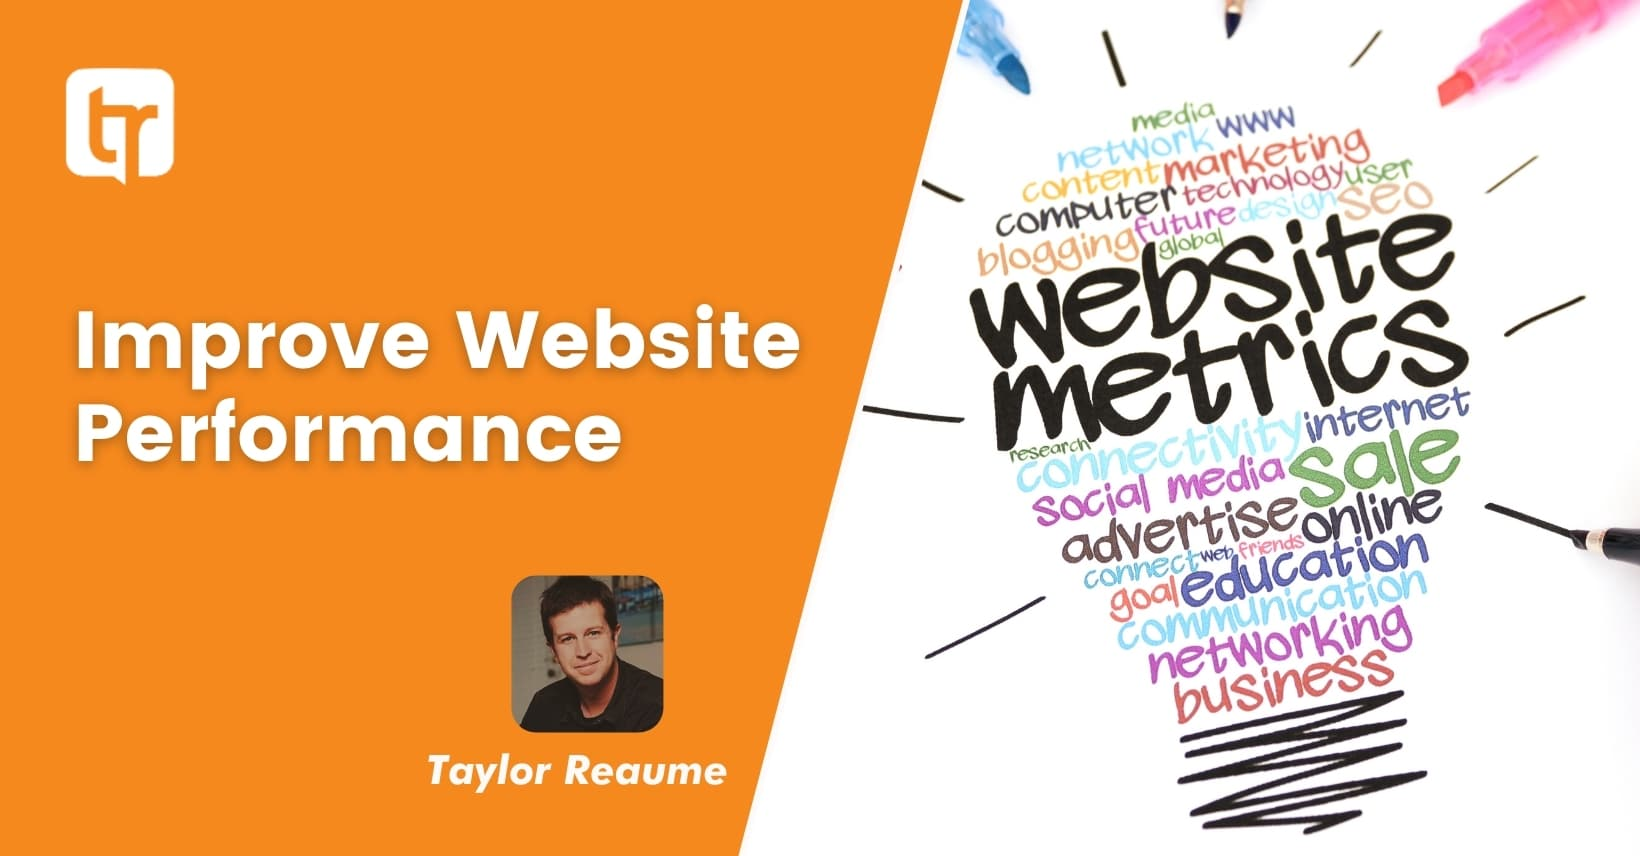 6 Ways To Improve Your Web Site This Summer